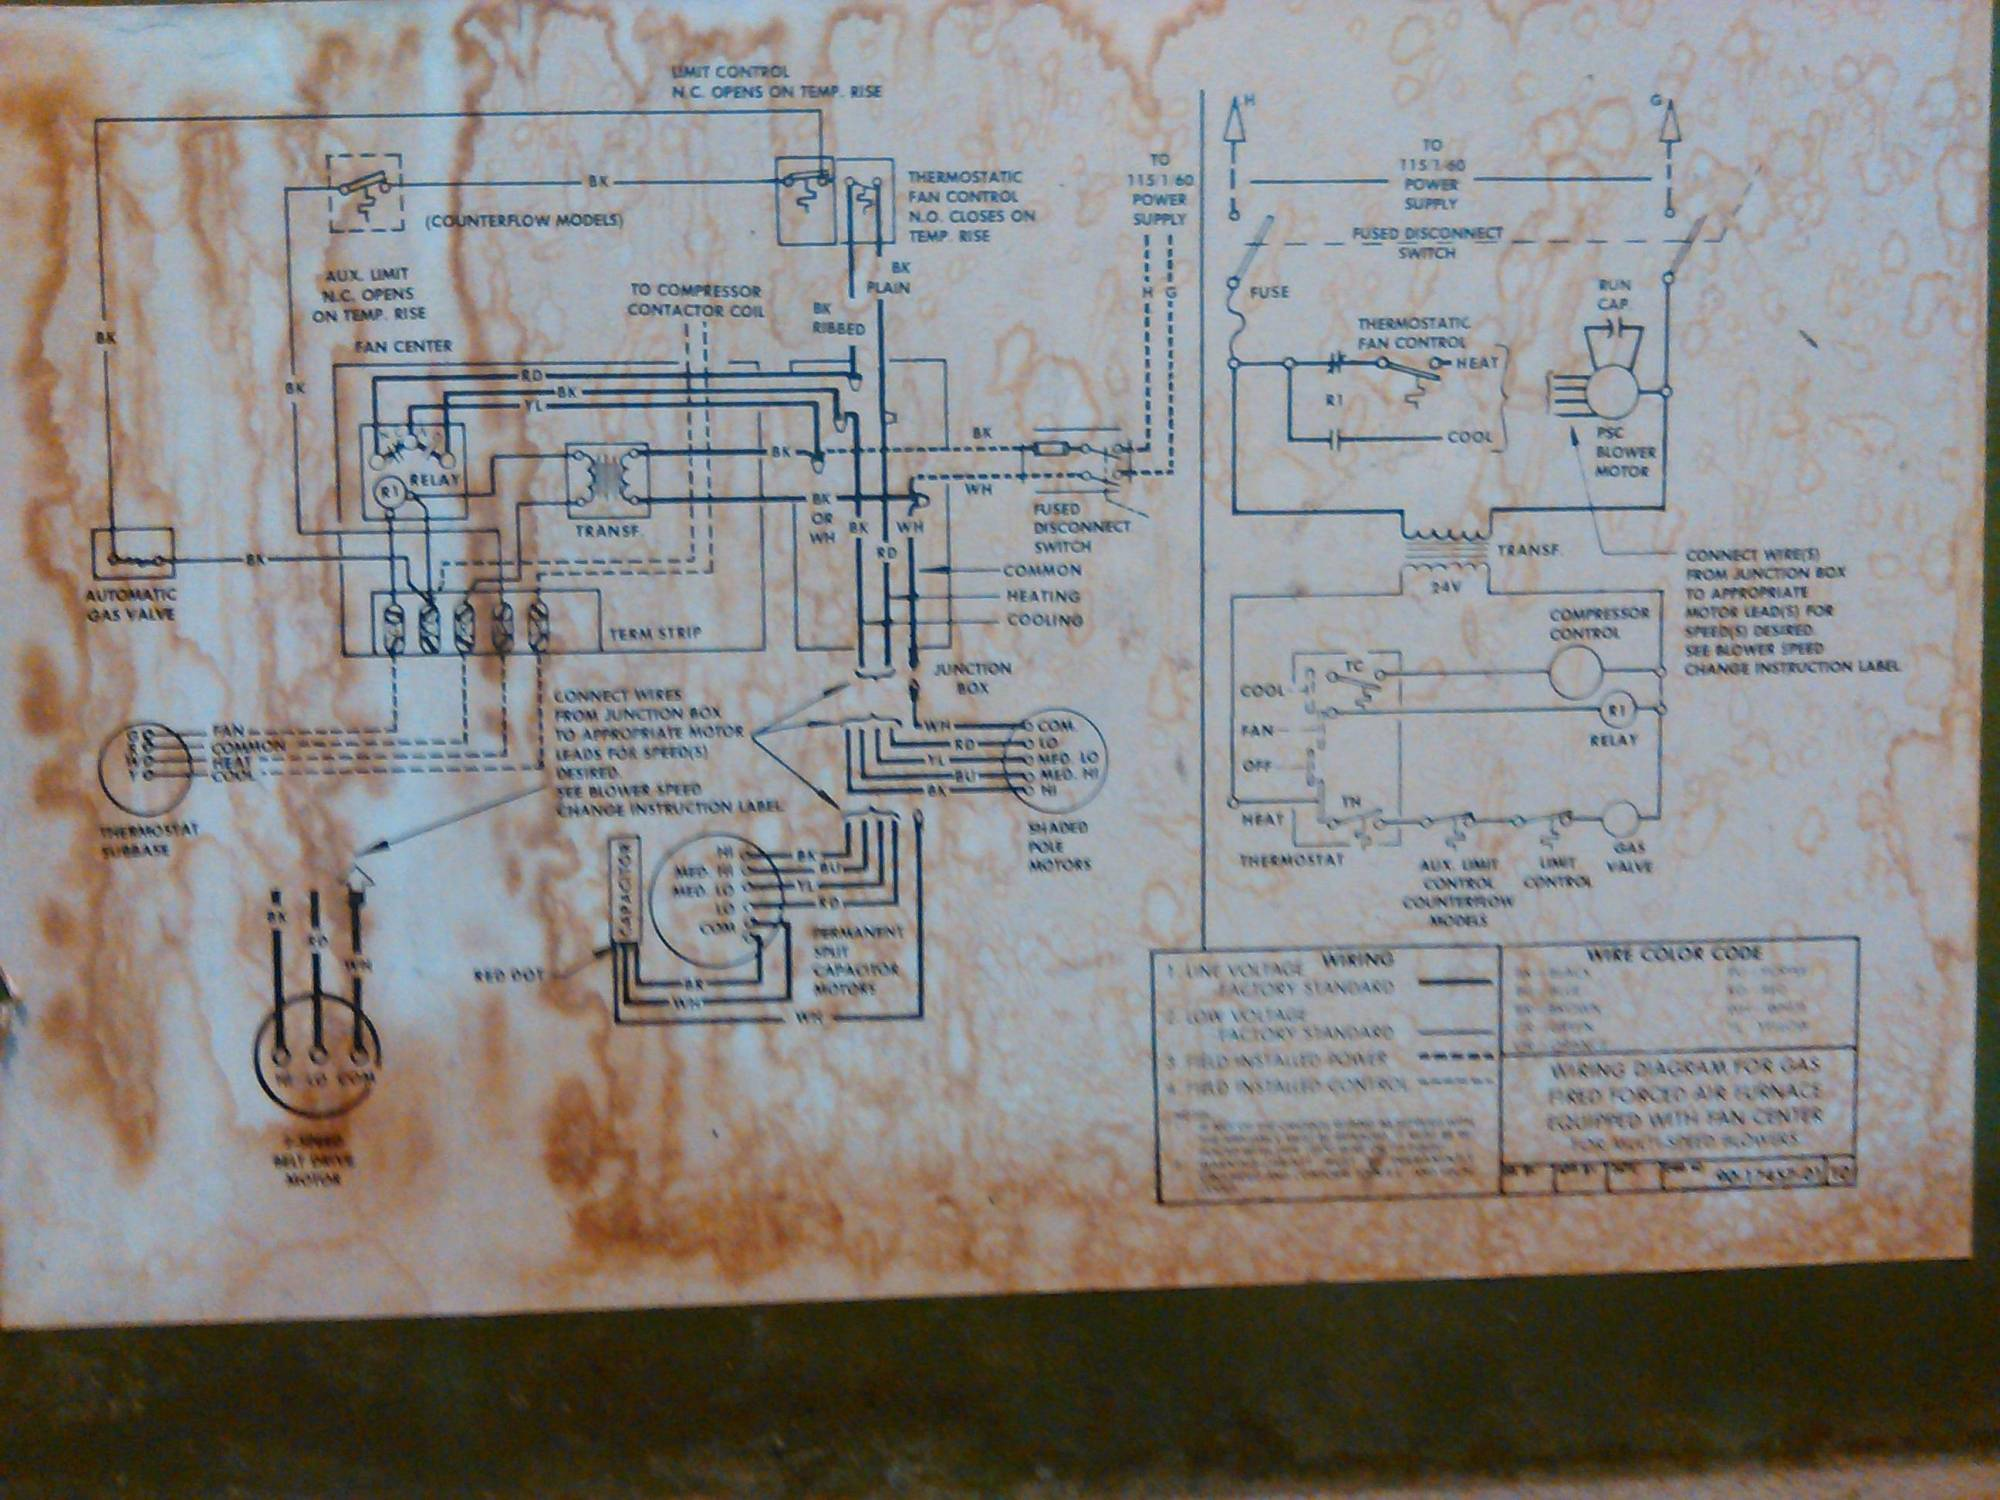 hight resolution of hvac replace old furnace blower motor with a new one but the wires ducane furnace wiring diagram old furnace wiring diagram